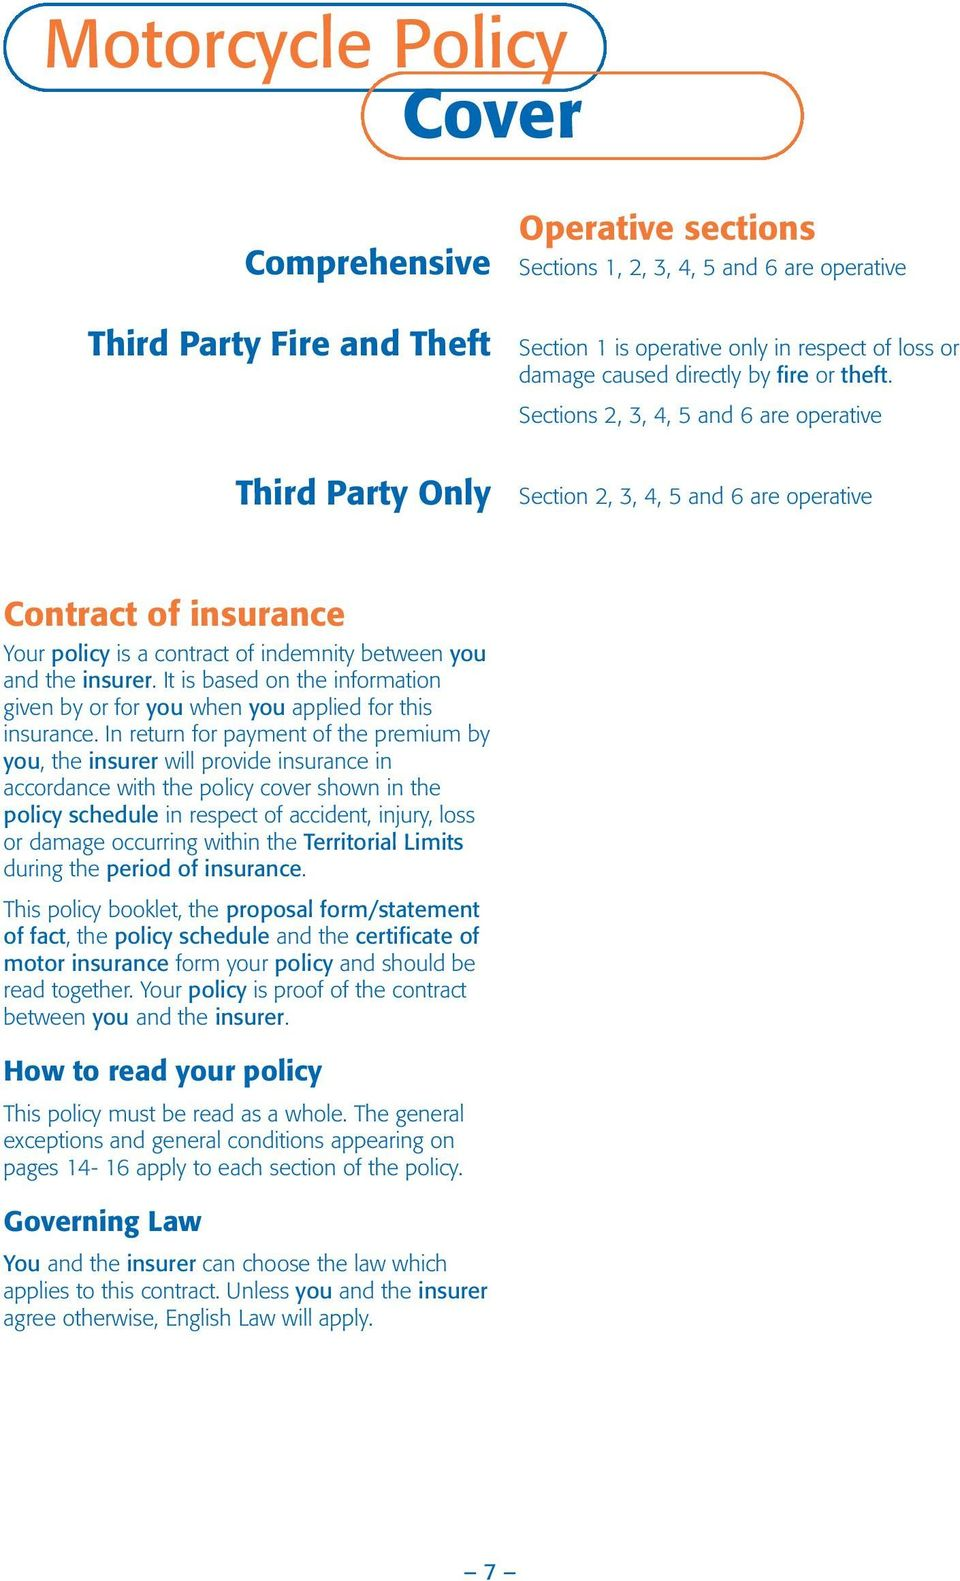 Sections 2, 3, 4, 5 and 6 are operative Third Party Only Section 2, 3, 4, 5 and 6 are operative Contract of insurance Your policy is a contract of indemnity between you and the insurer.